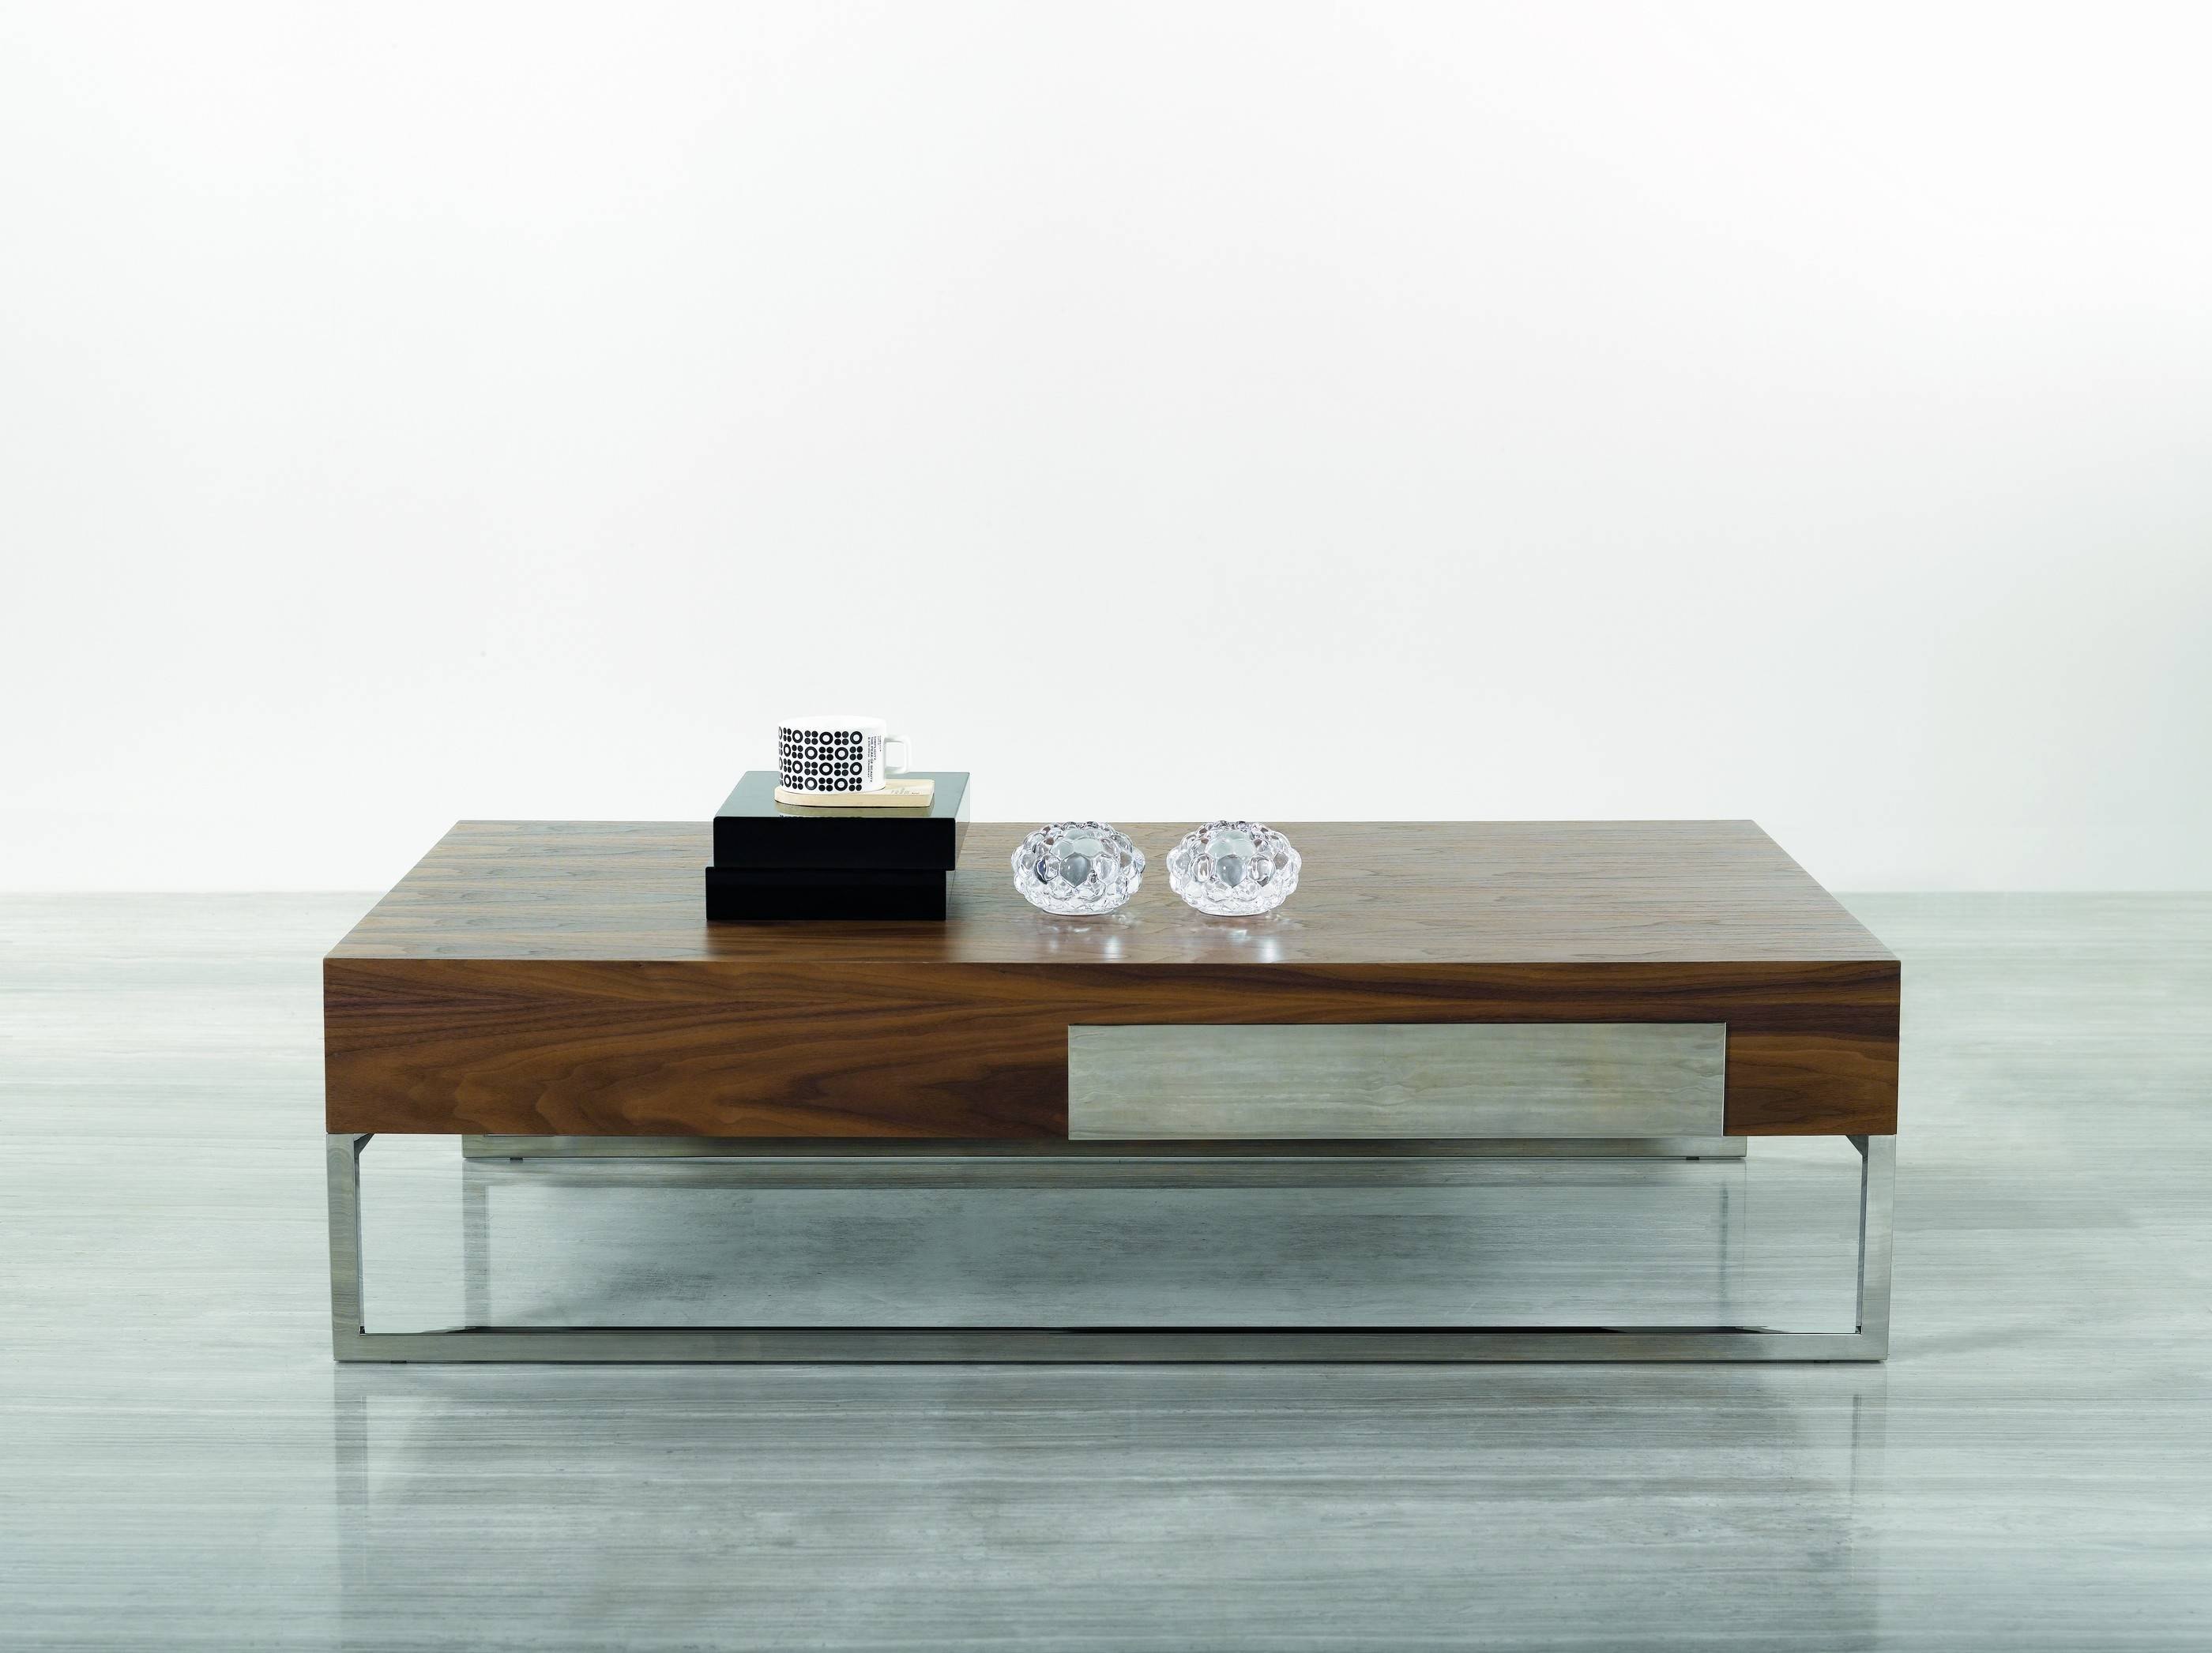 Modern Coffee Table Designs - Coffee Addicts intended for Contemporary Coffee Tables (Image 12 of 15)